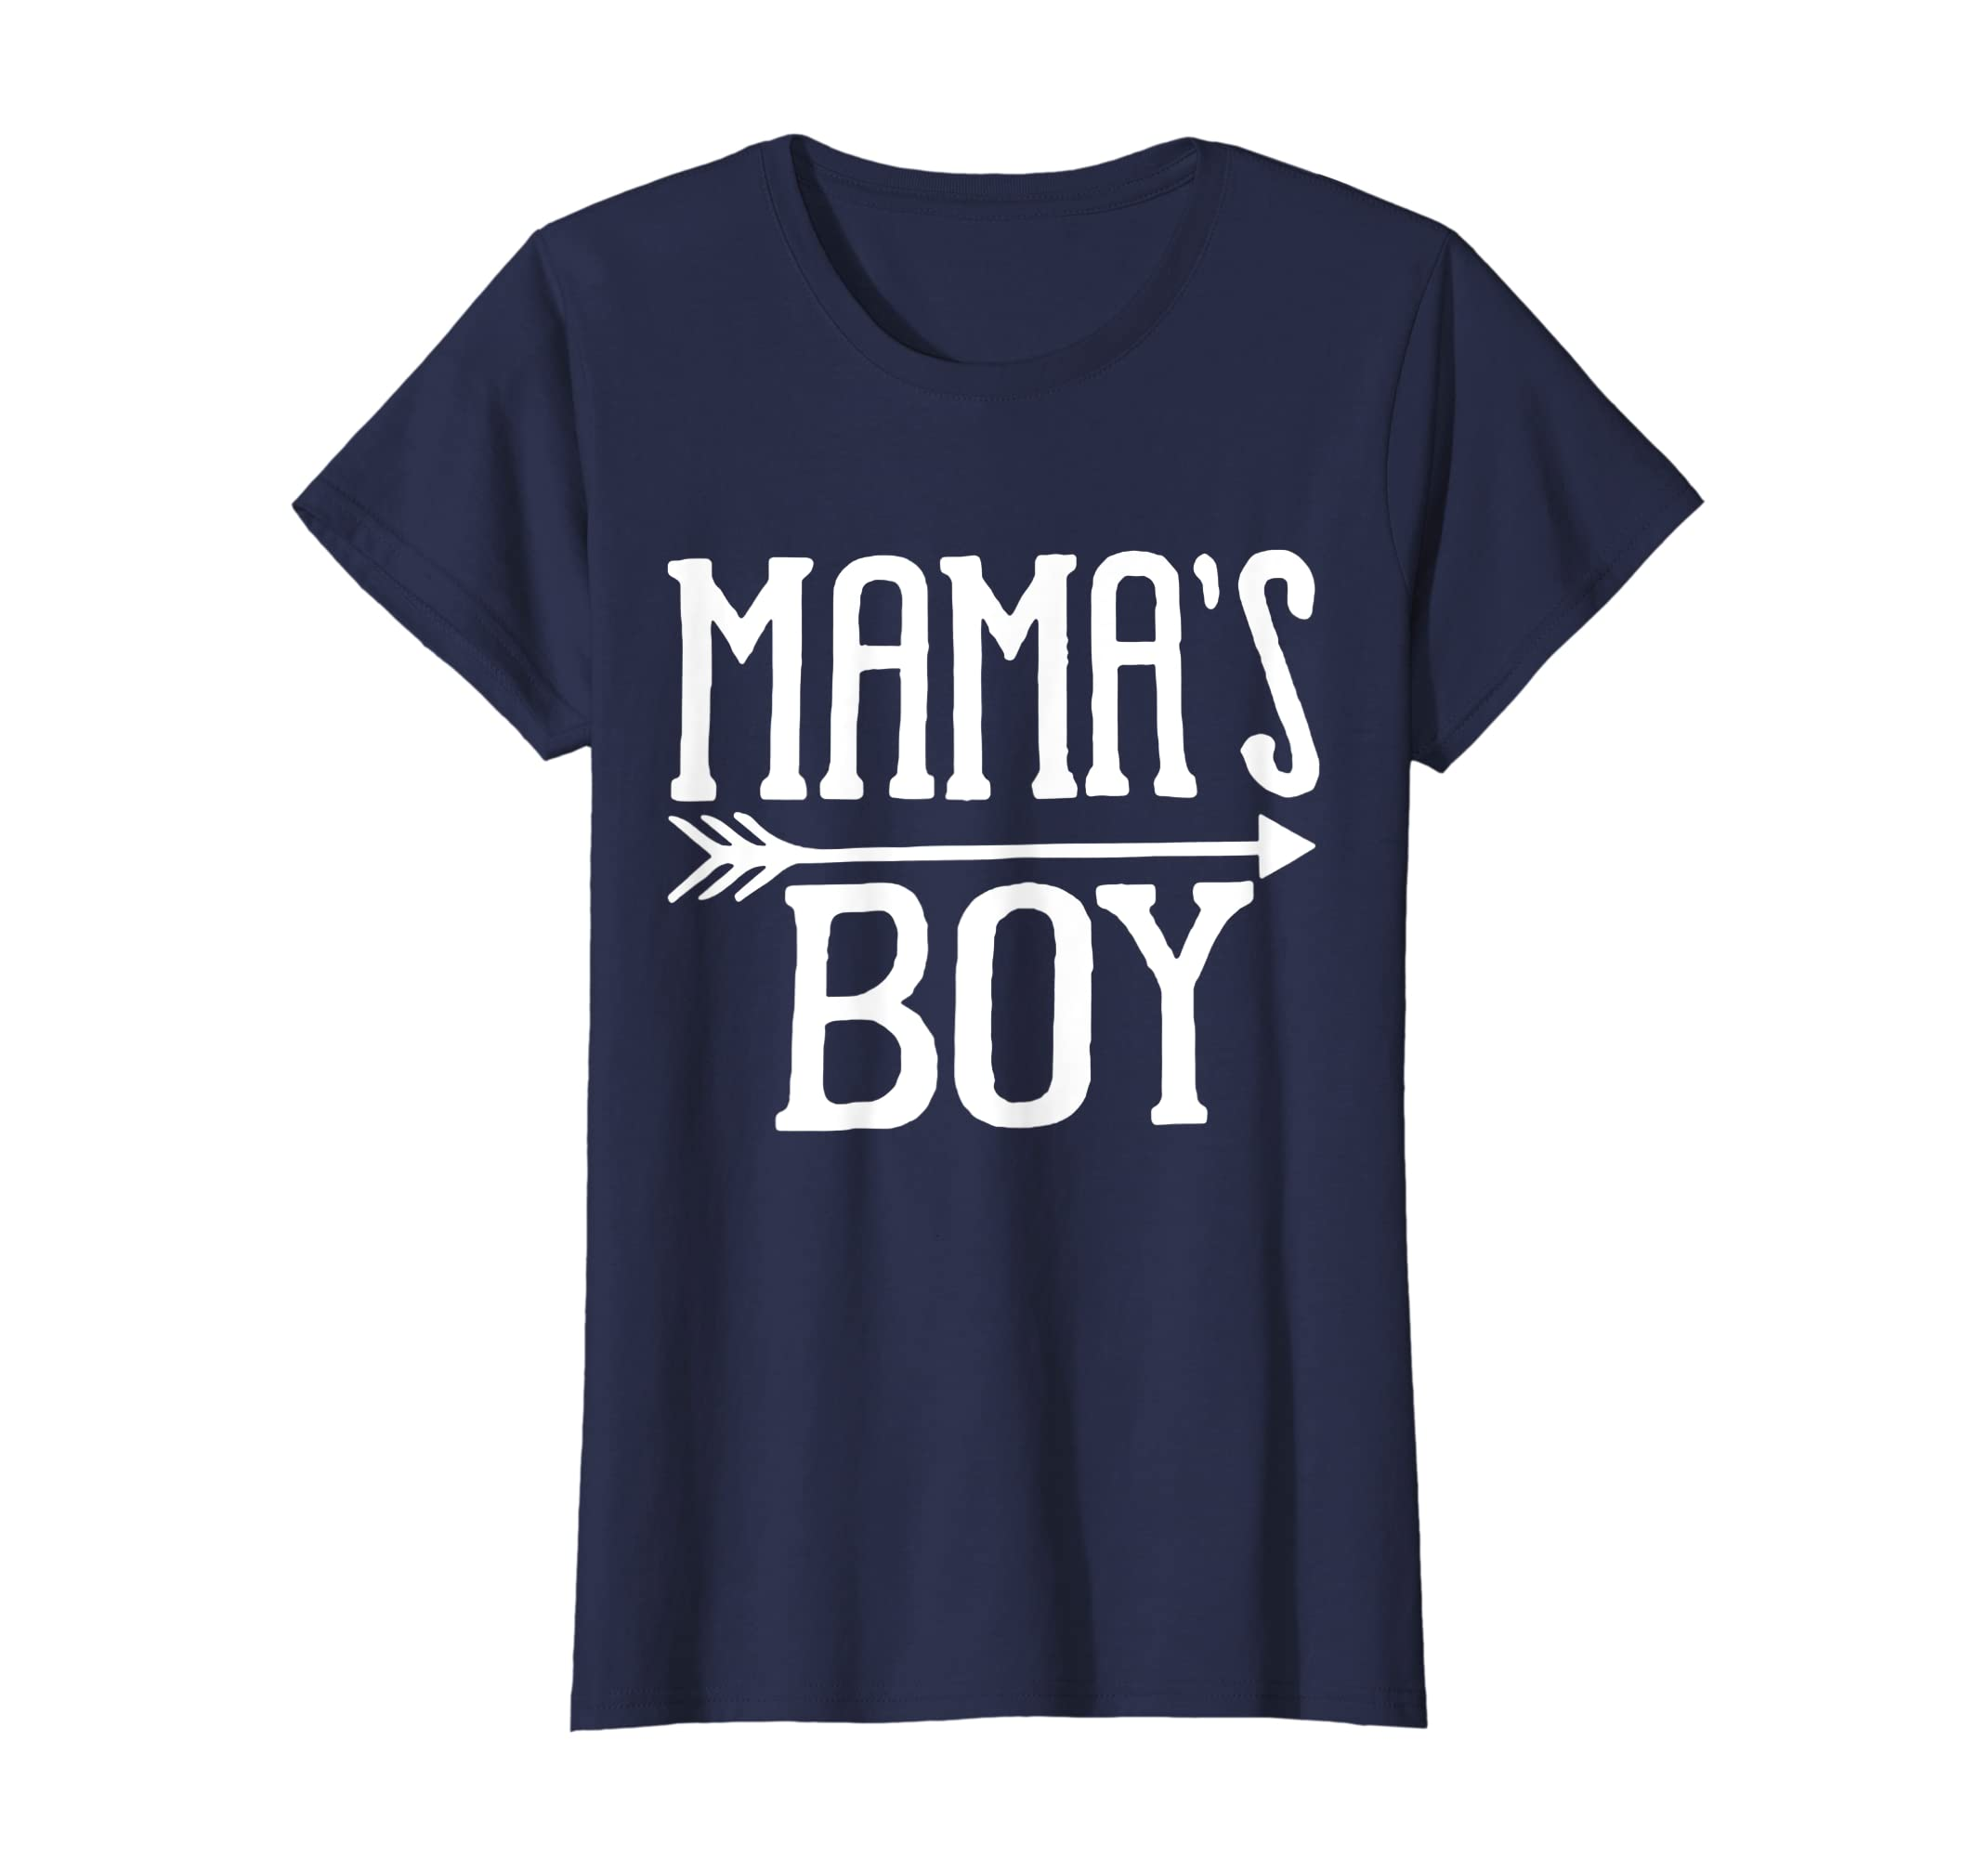 fda0c4148 Amazon.com: MAMA'S BOY T-SHIRT: Clothing